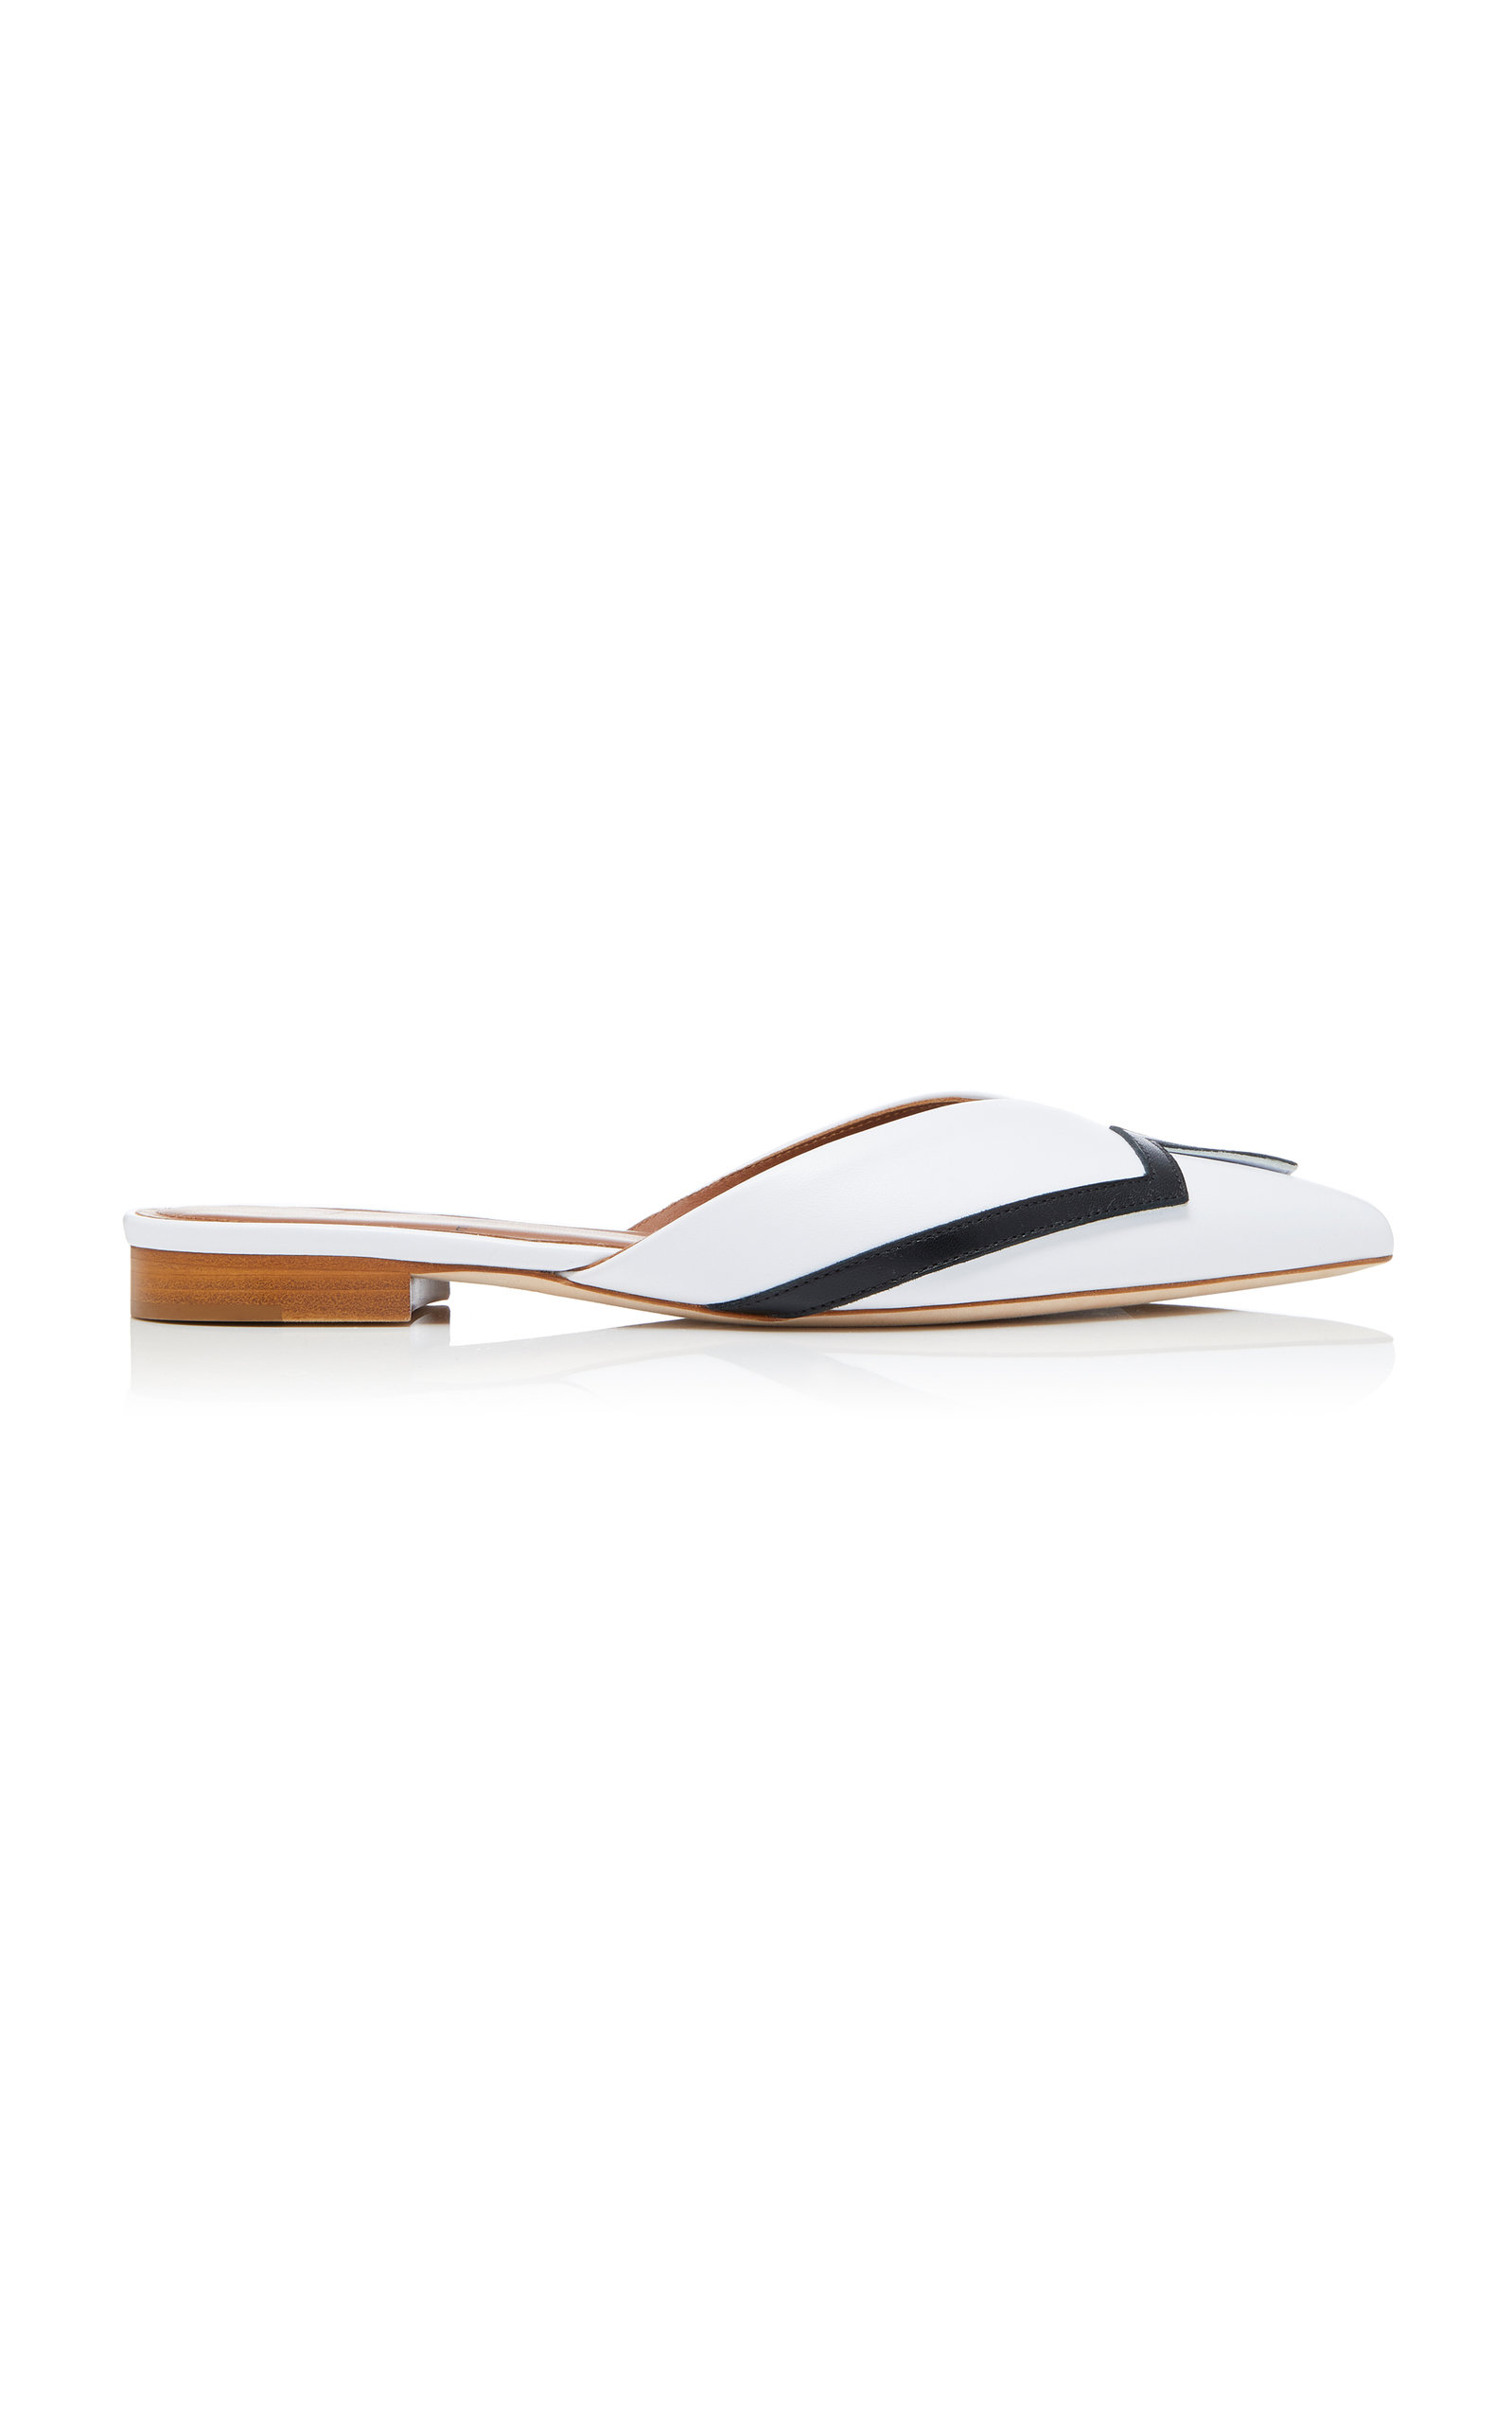 MALONE SOULIERS X EMANUEL UNGARO Amelie Leather Point-Toe Flats in White